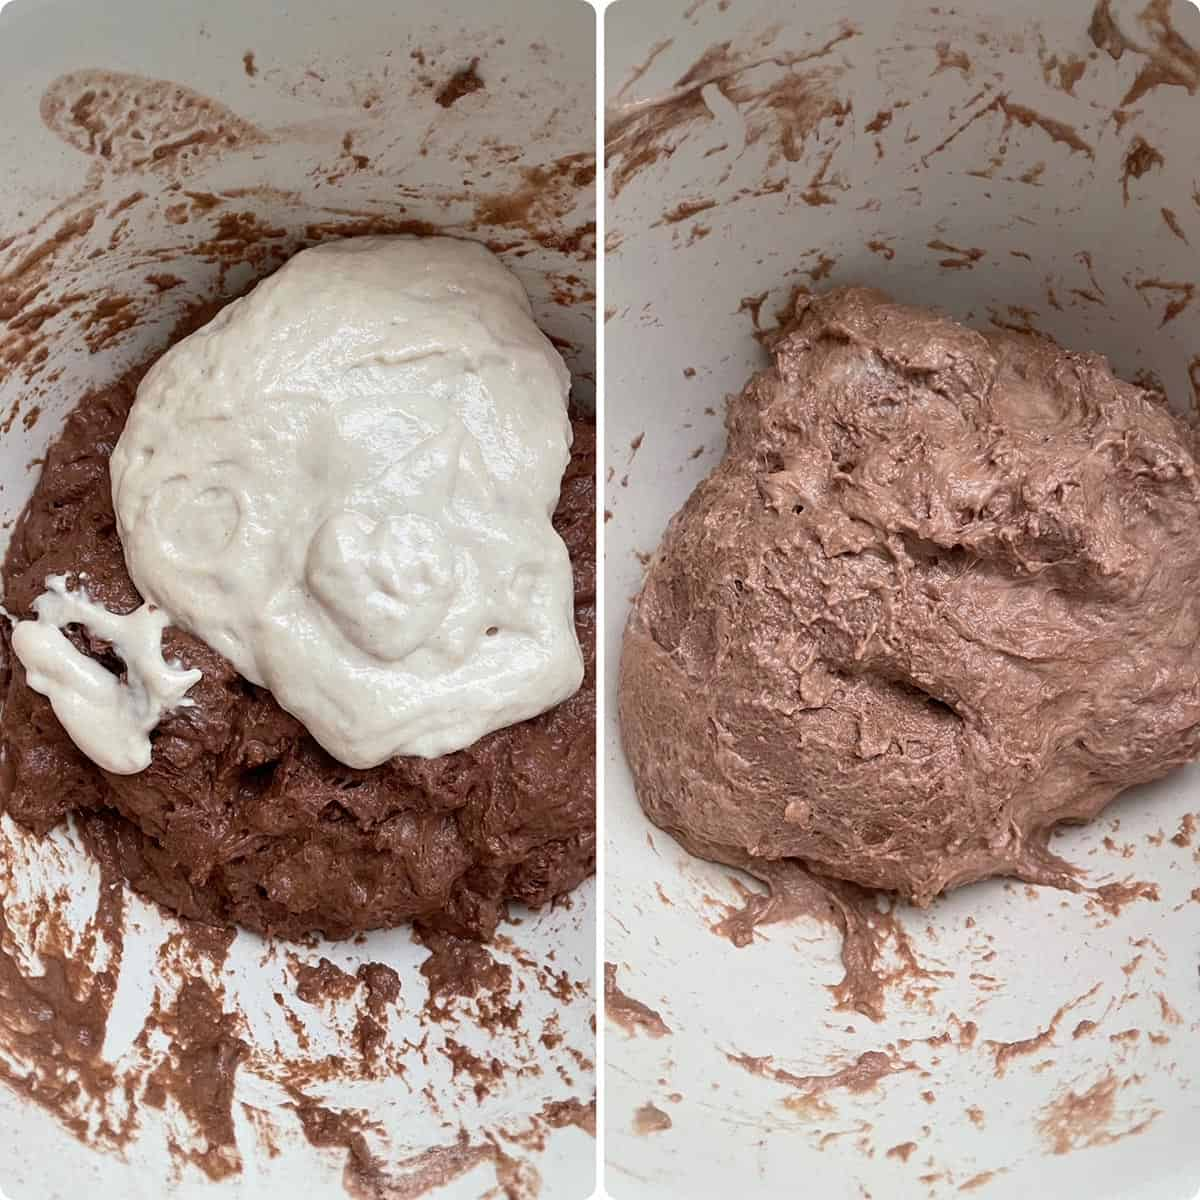 adding starter to the chocolate dough in the bowl